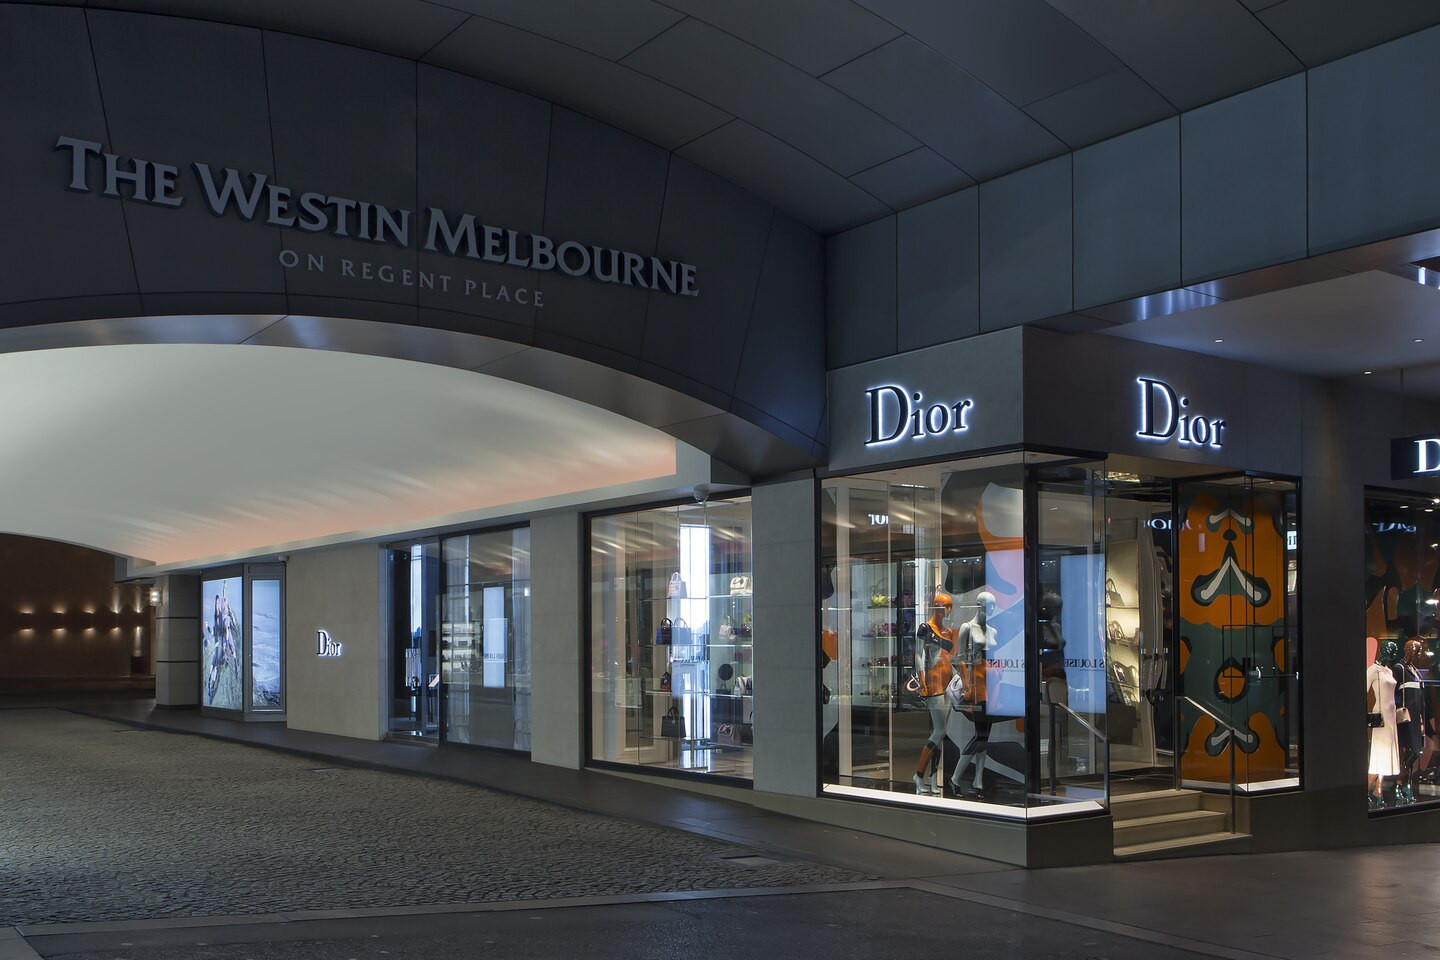 Plan to quarantine Australian Open players at Westin Melbourne cancelled after resident concerns